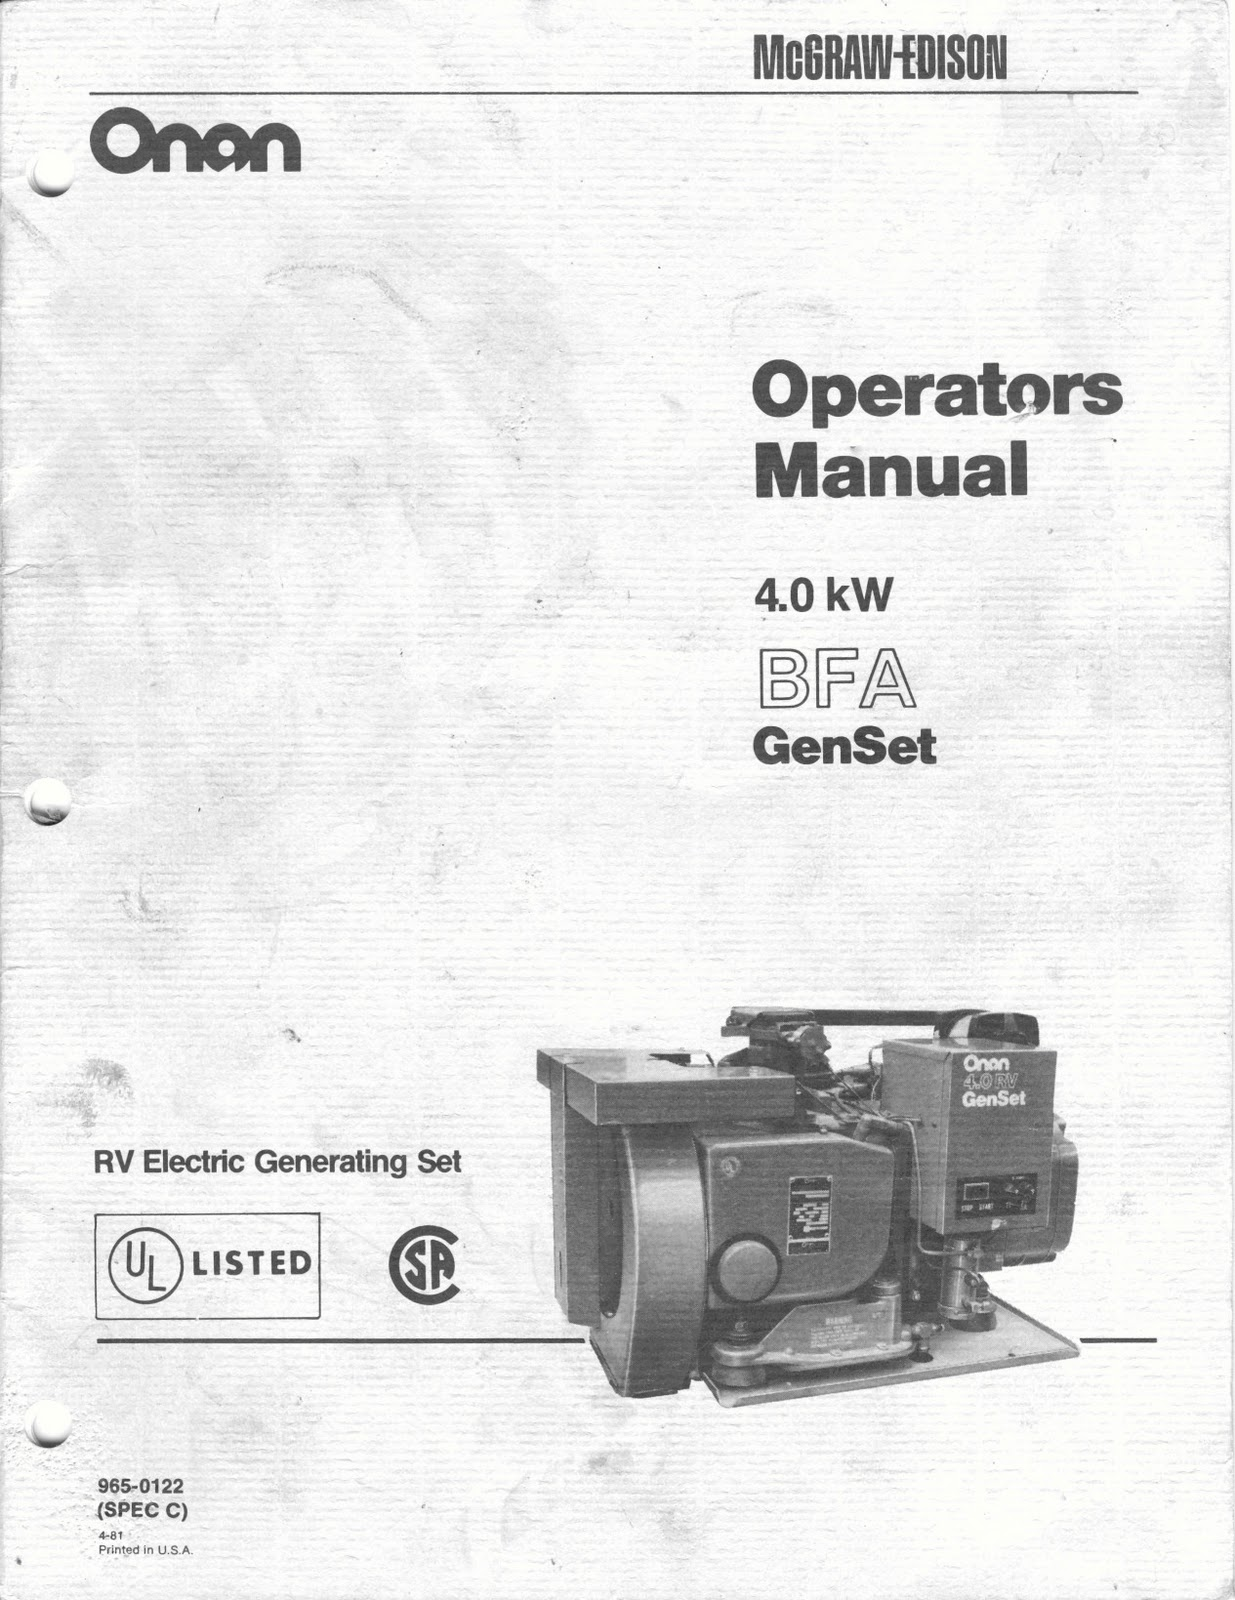 small resolution of onan 4 0 kw bfa genset operators manual